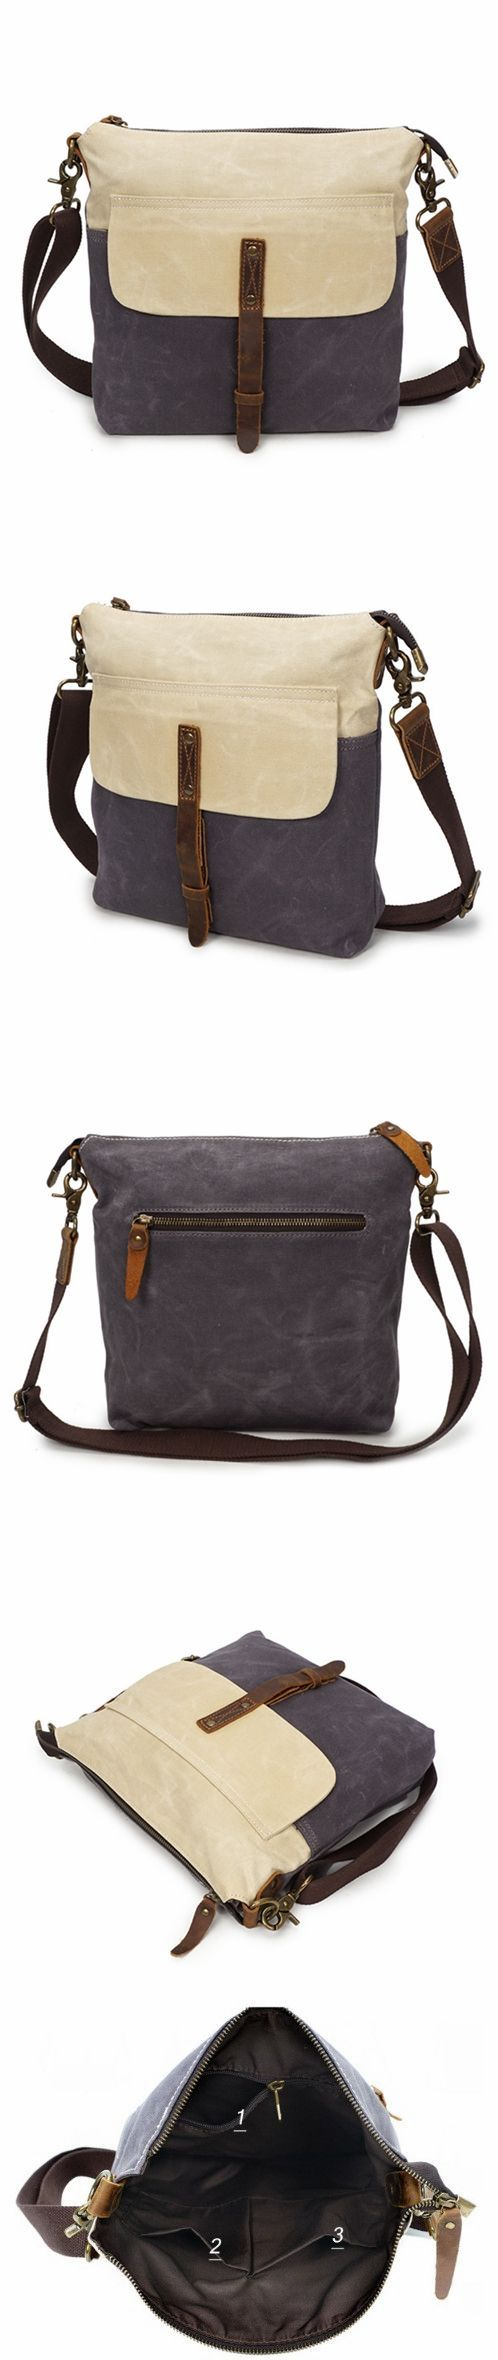 9573f32cdd Waxed Canvas Crazy Horse Leather Messenger Bag Crossbody Shoulder Bag 5186-1